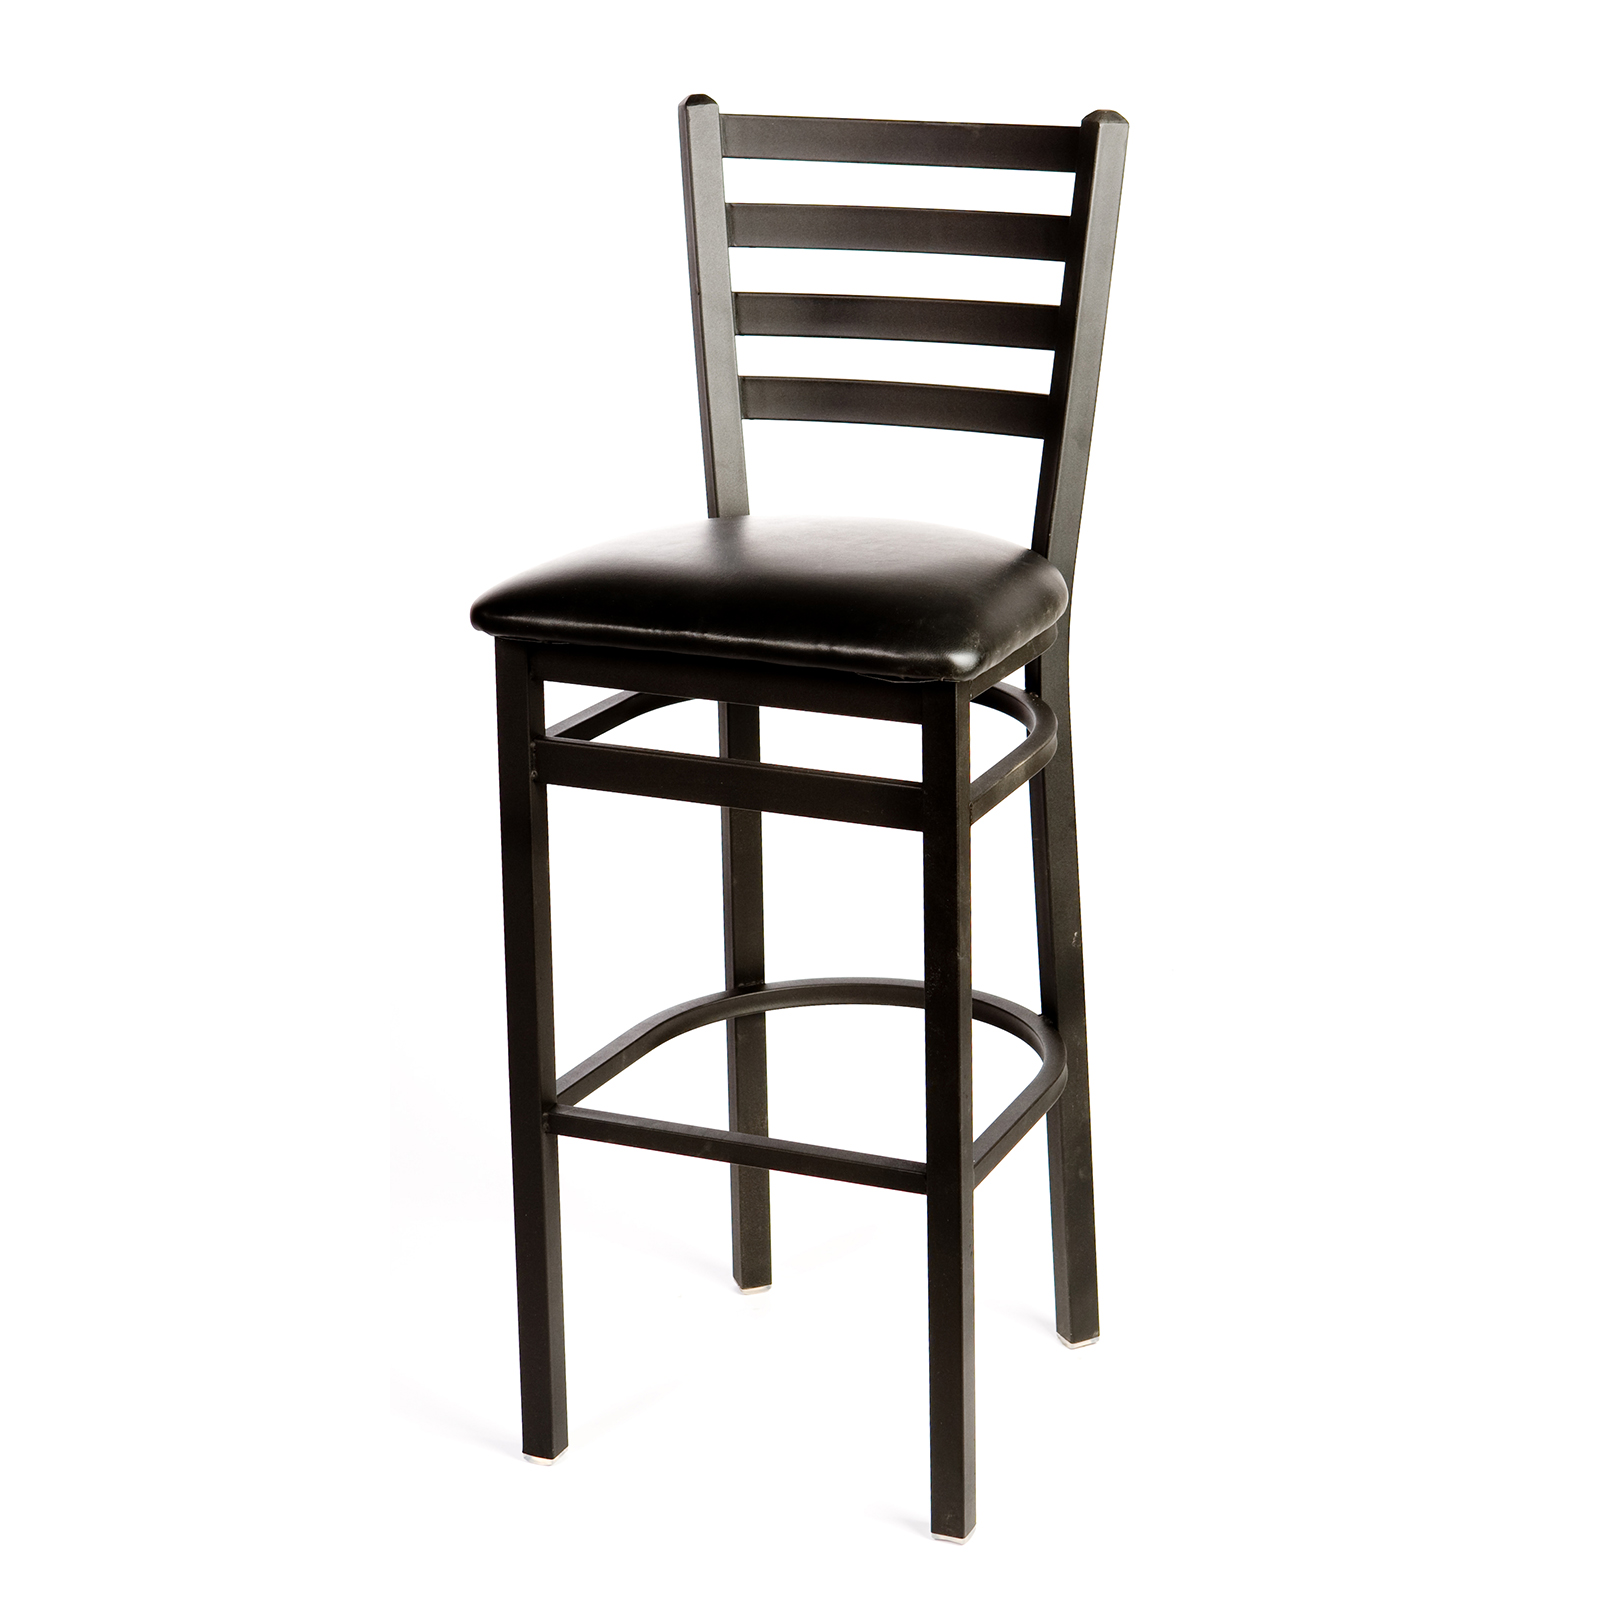 Oak Street SL2301 bar stool, indoor